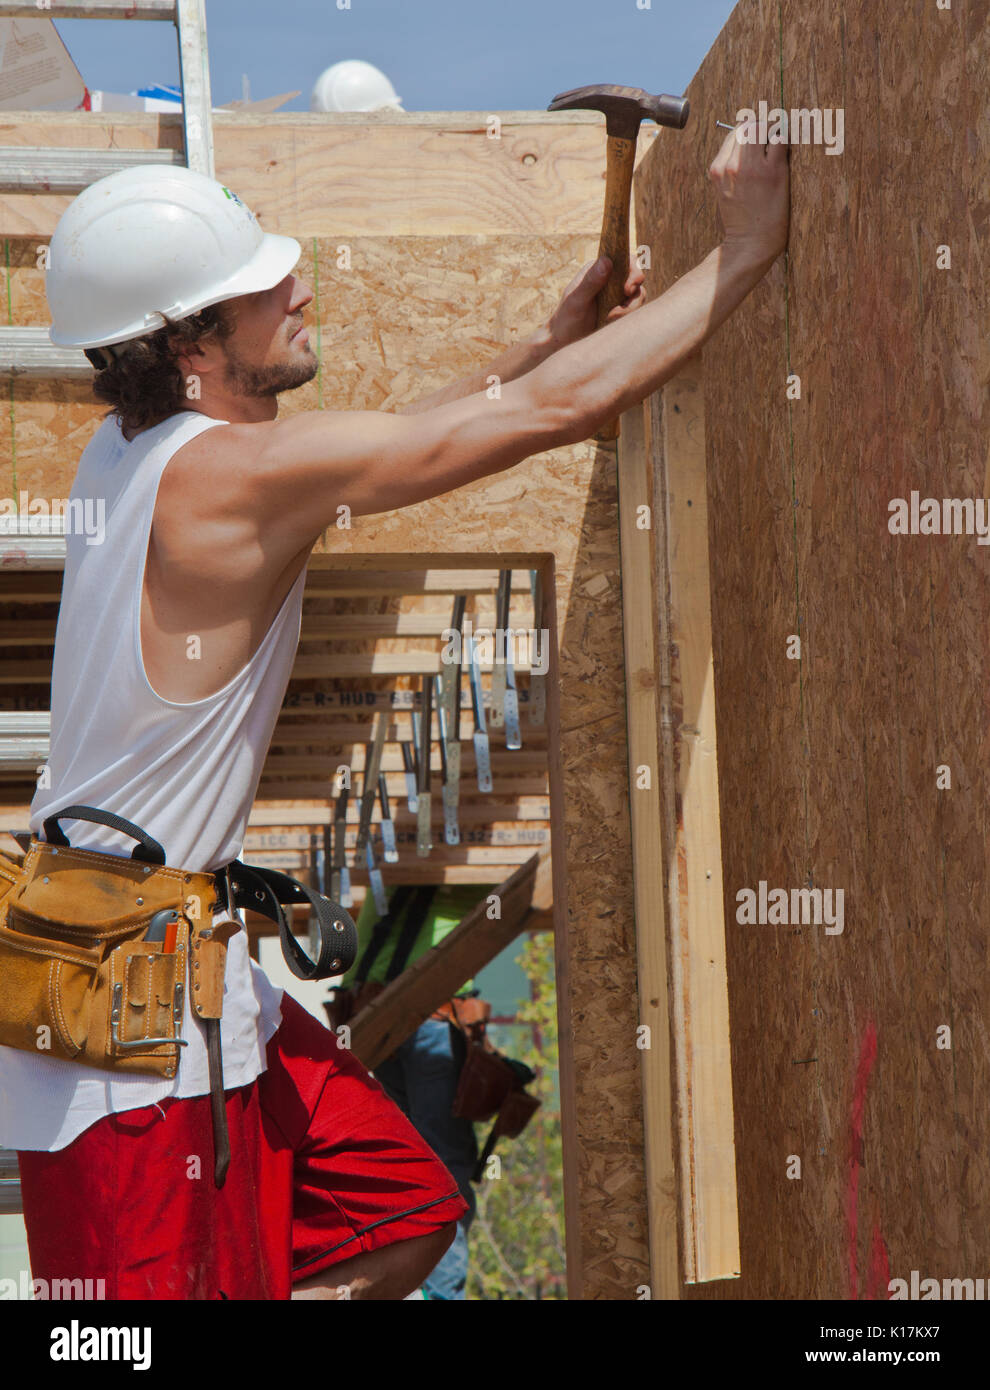 Man builds wall for home for Habitat For Humanity, Kinsell Commons, Oakland, Calif, Apr 16, 2011 - Stock Image